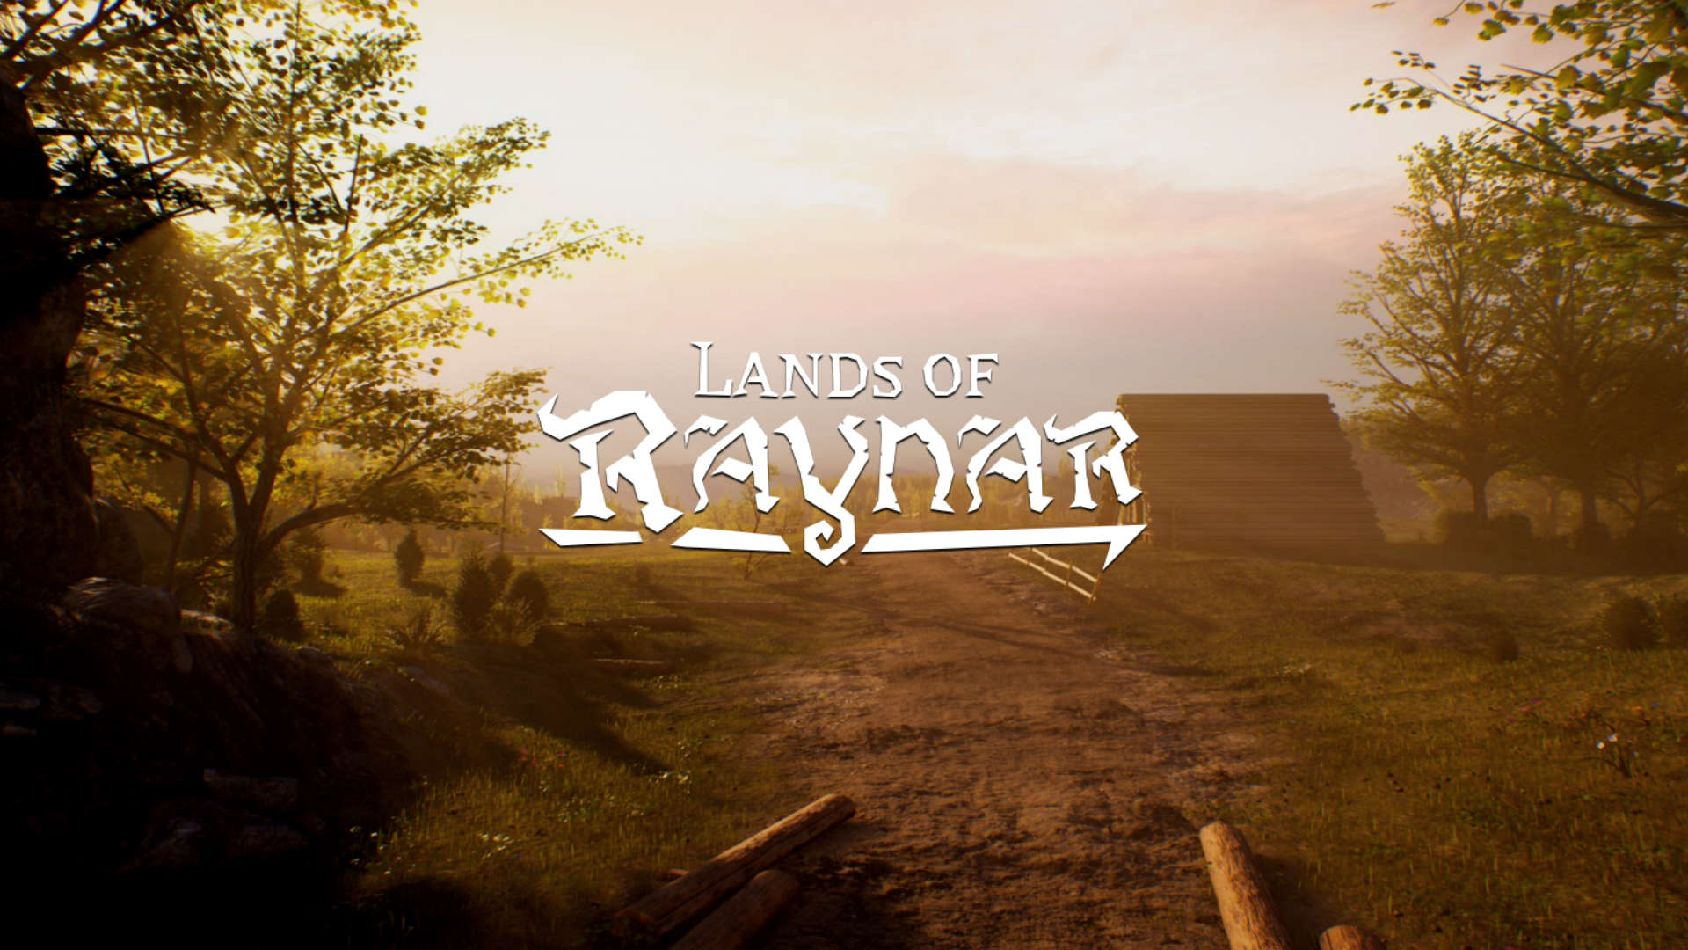 Lands of Raynar